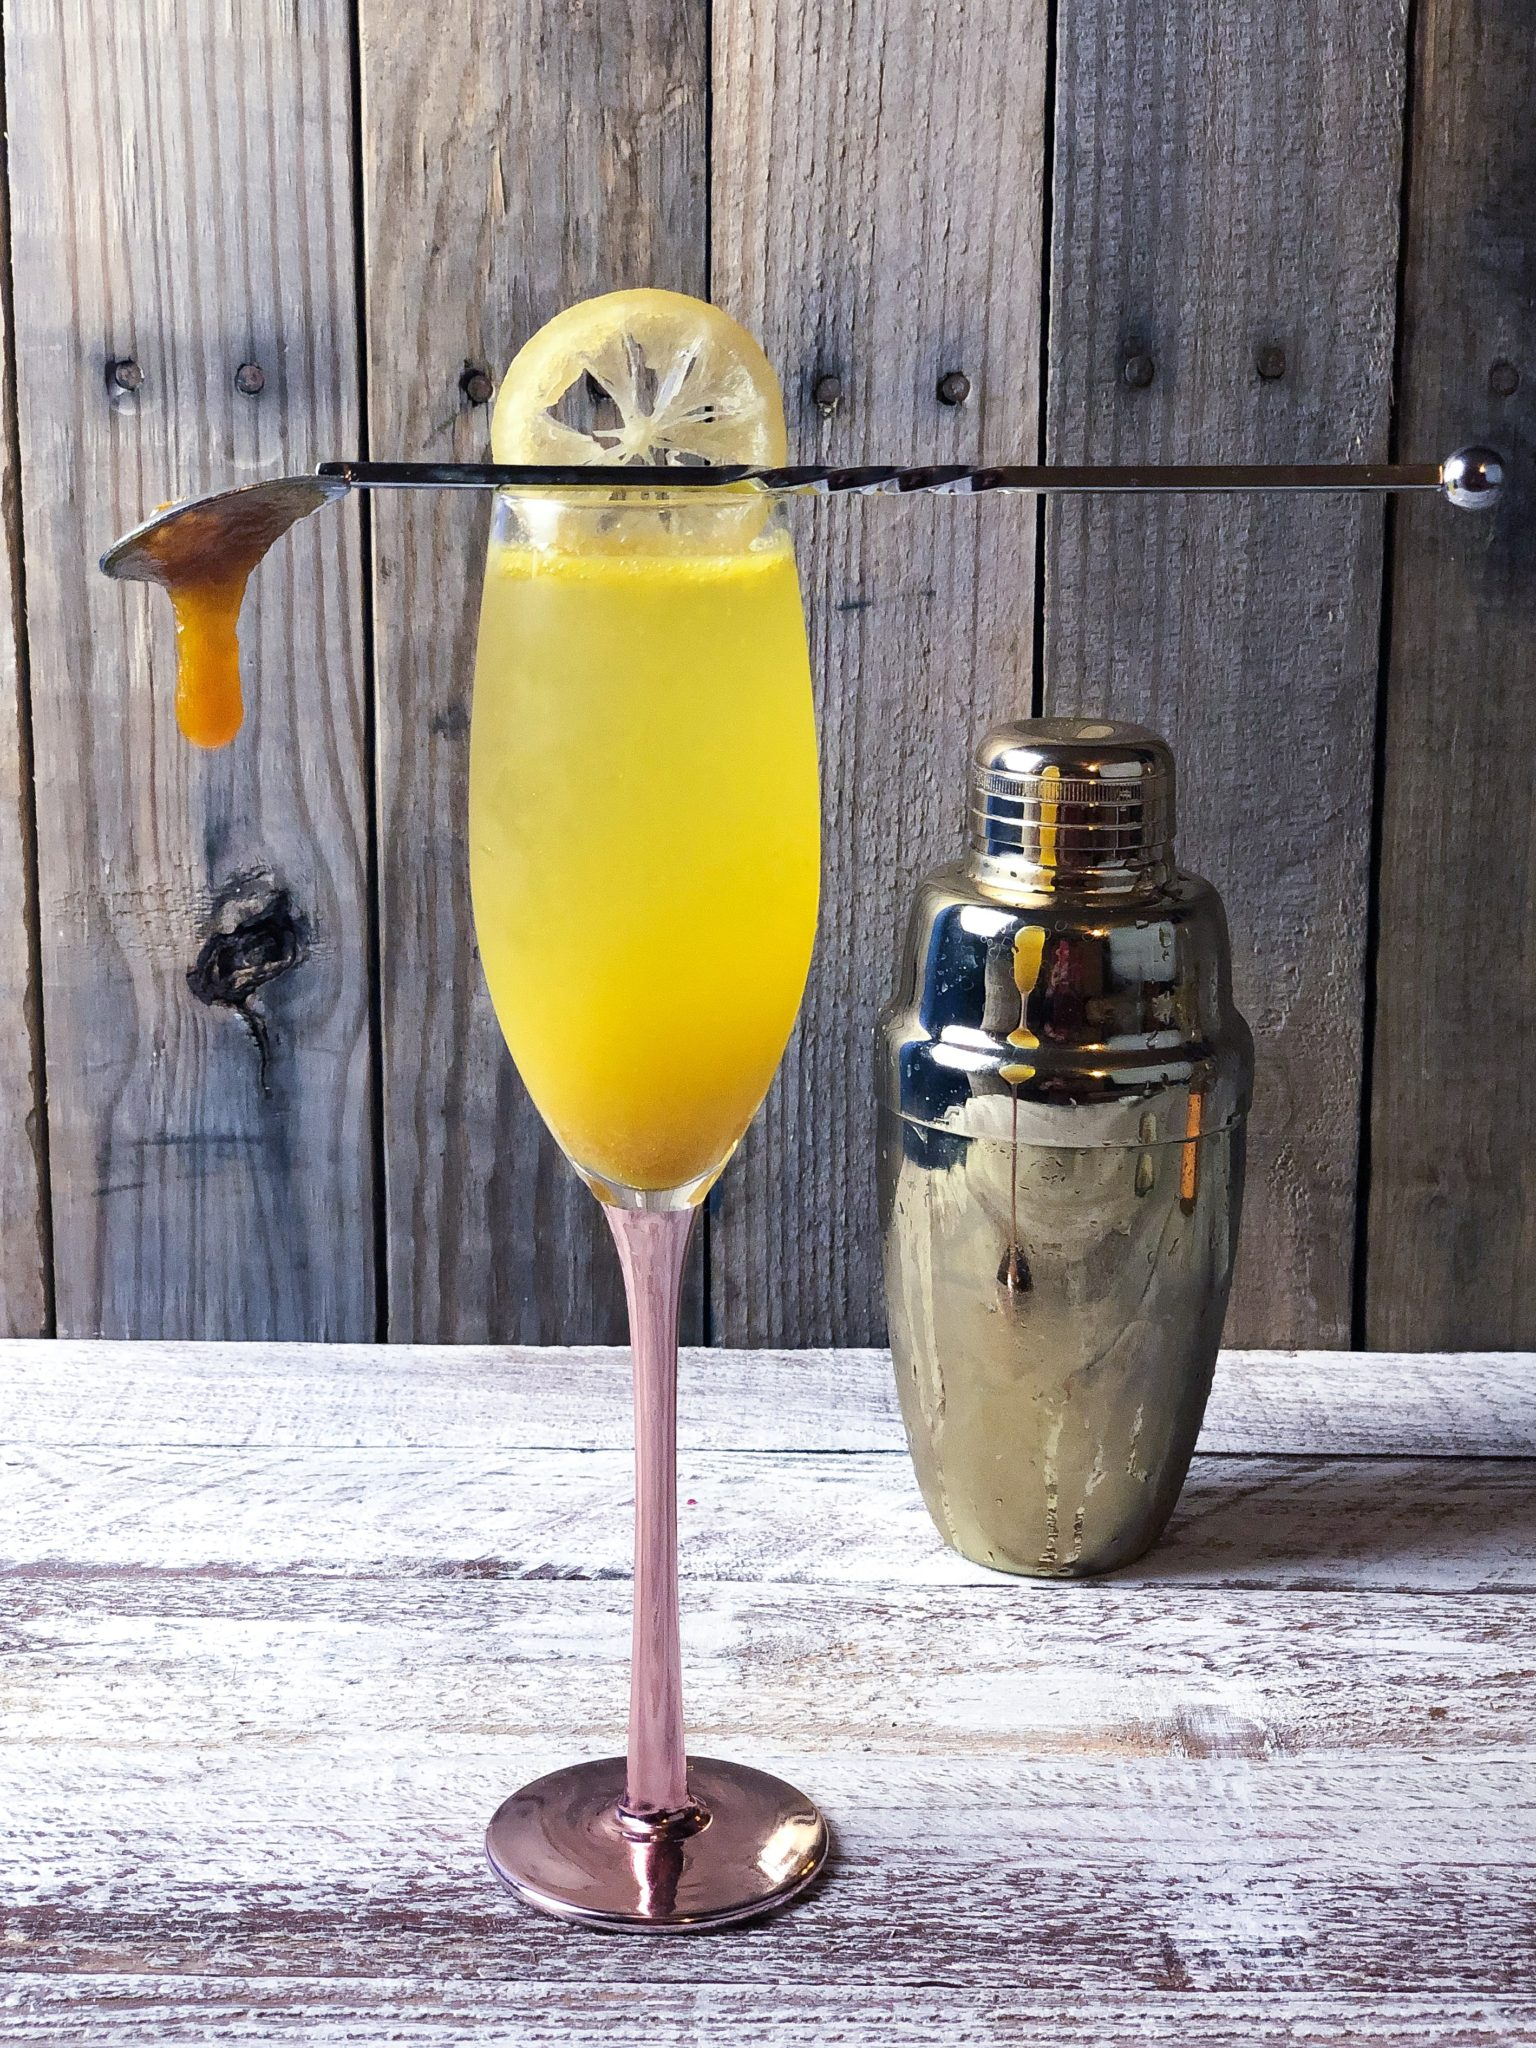 bright yellow cocktail in a champaign glass with a spoon and a dollop of jam